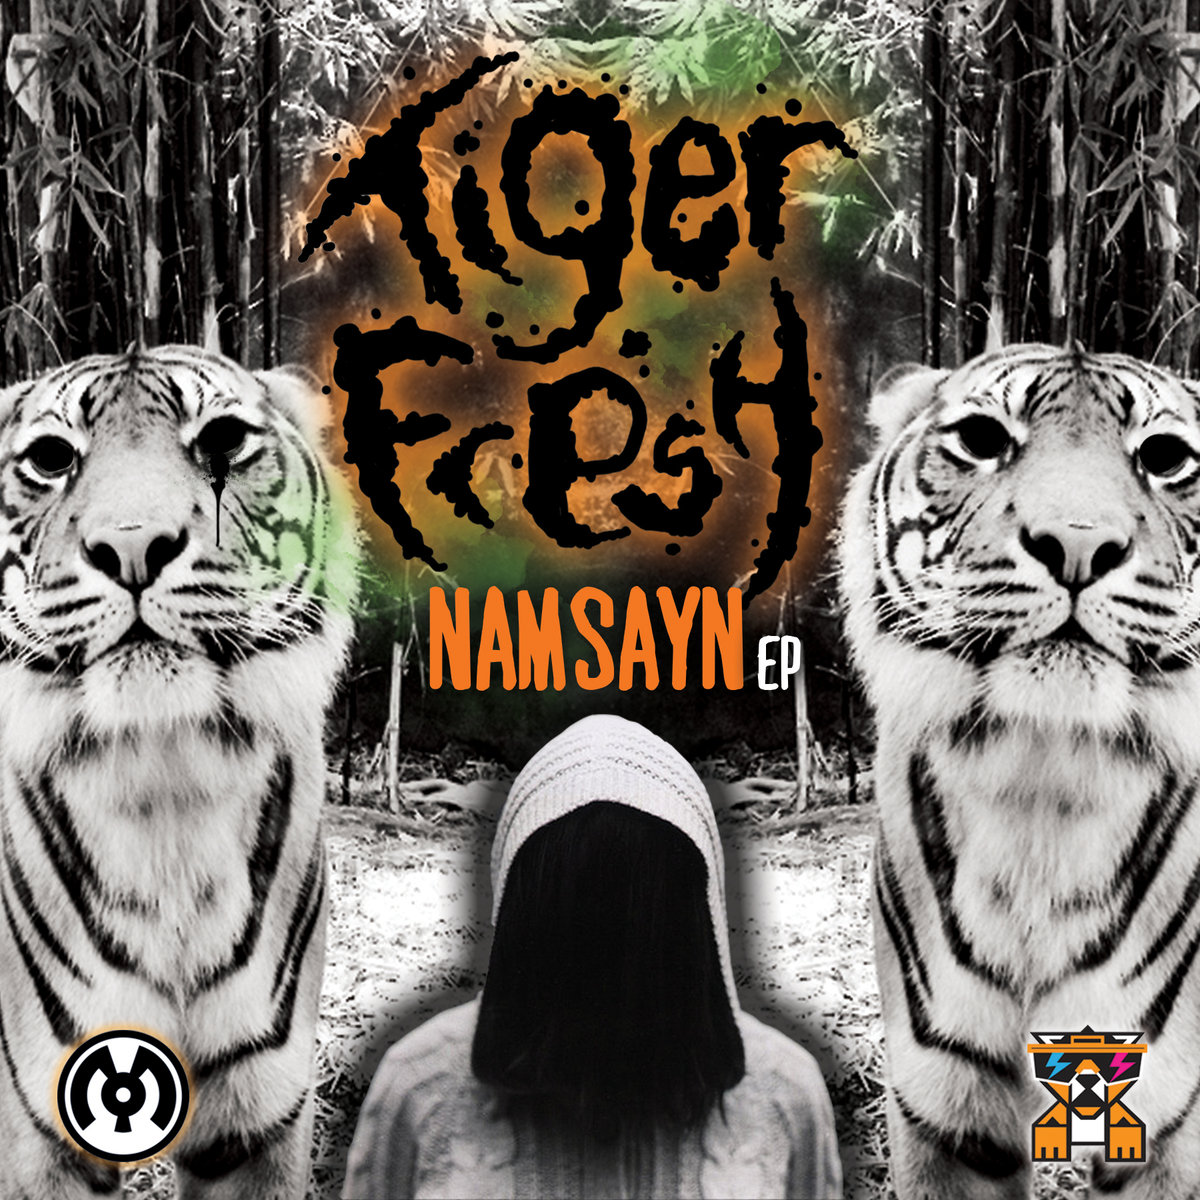 Tiger Fresh - Too Turnt Up (Chrome Wolves Remix) @ 'Namsayn' album (electronic, dubstep)